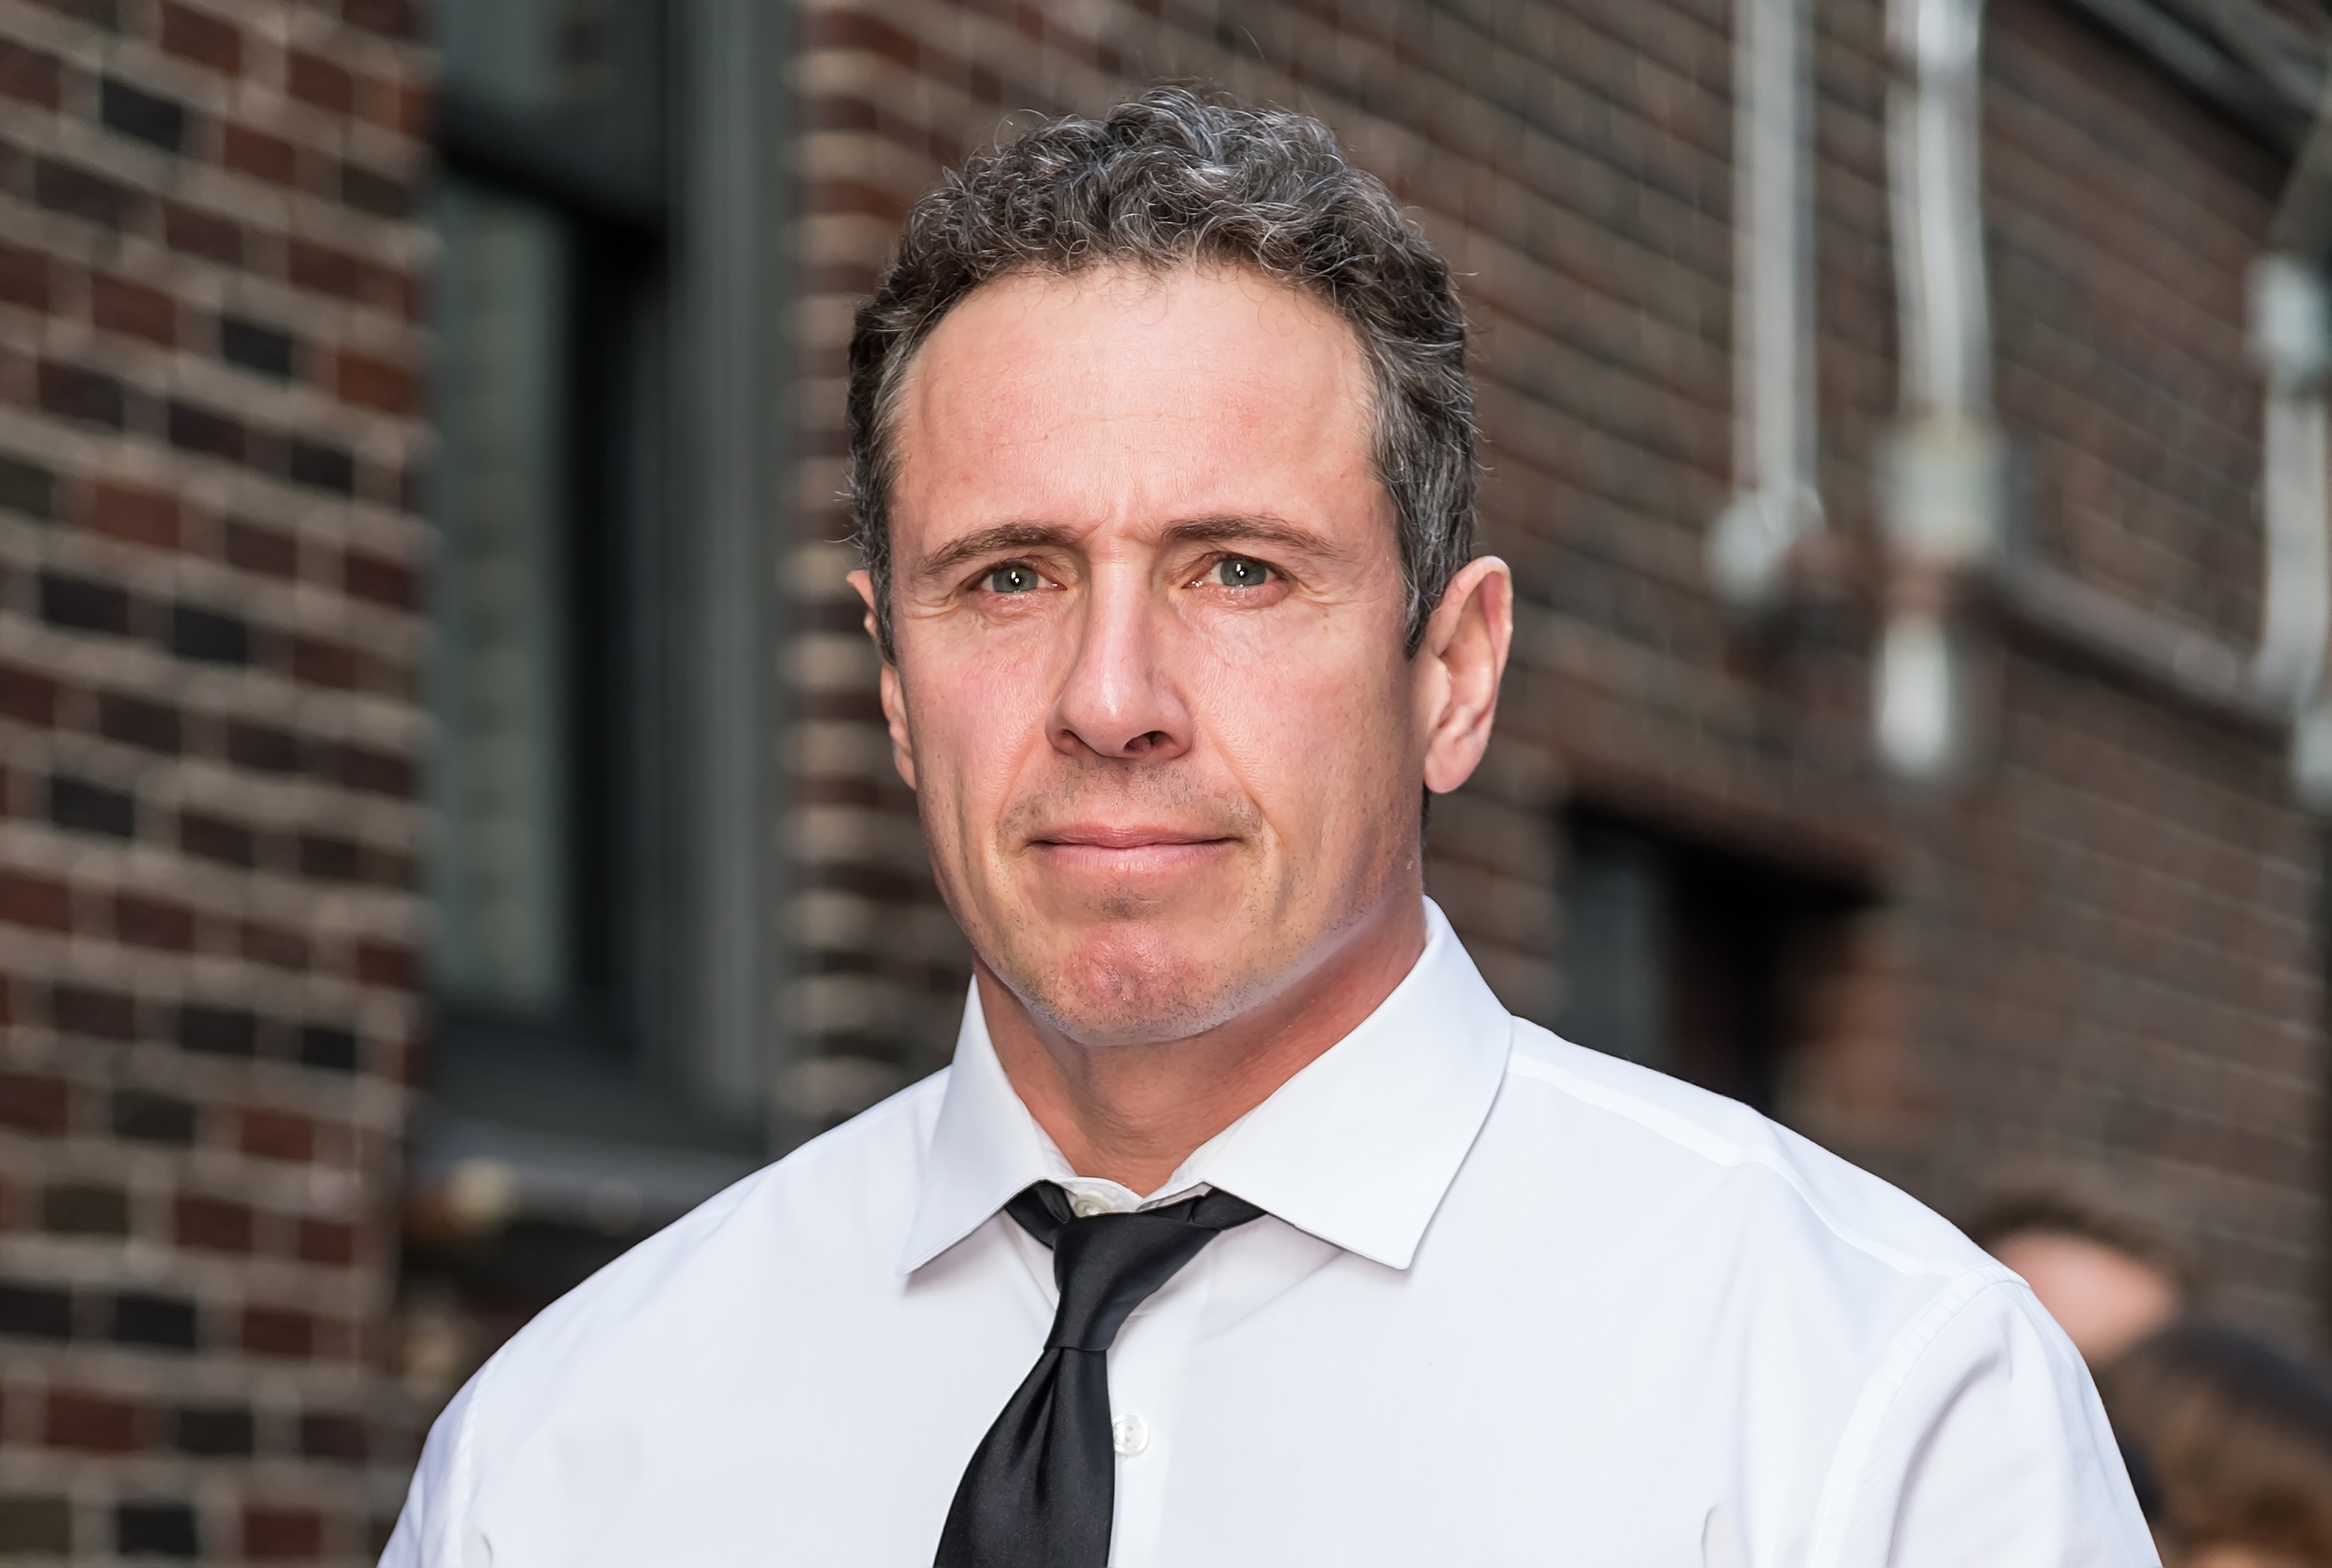 Chris Cuomo Blasts Vaccine Hesitancy: 'We Are Not Who We Were After 9/11' - Newsweek